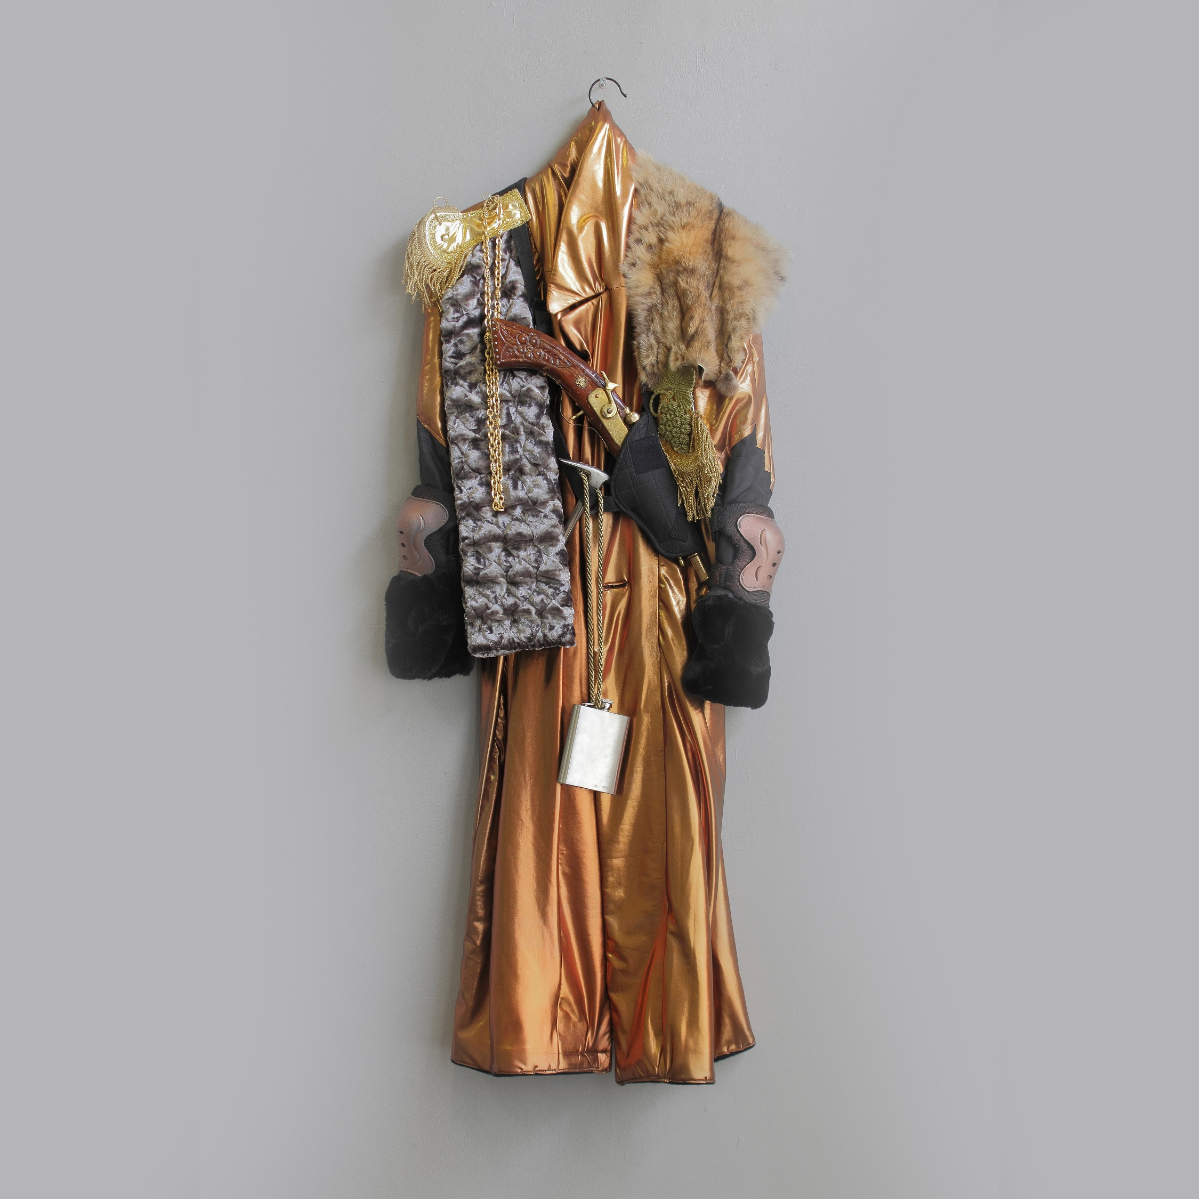 PREPPER COAT, 2016, wall sculpture &  performance costume  @SOME DEMONSTRATIONS by Charlie Stein  @MANIFESTA, 2016, Zurich